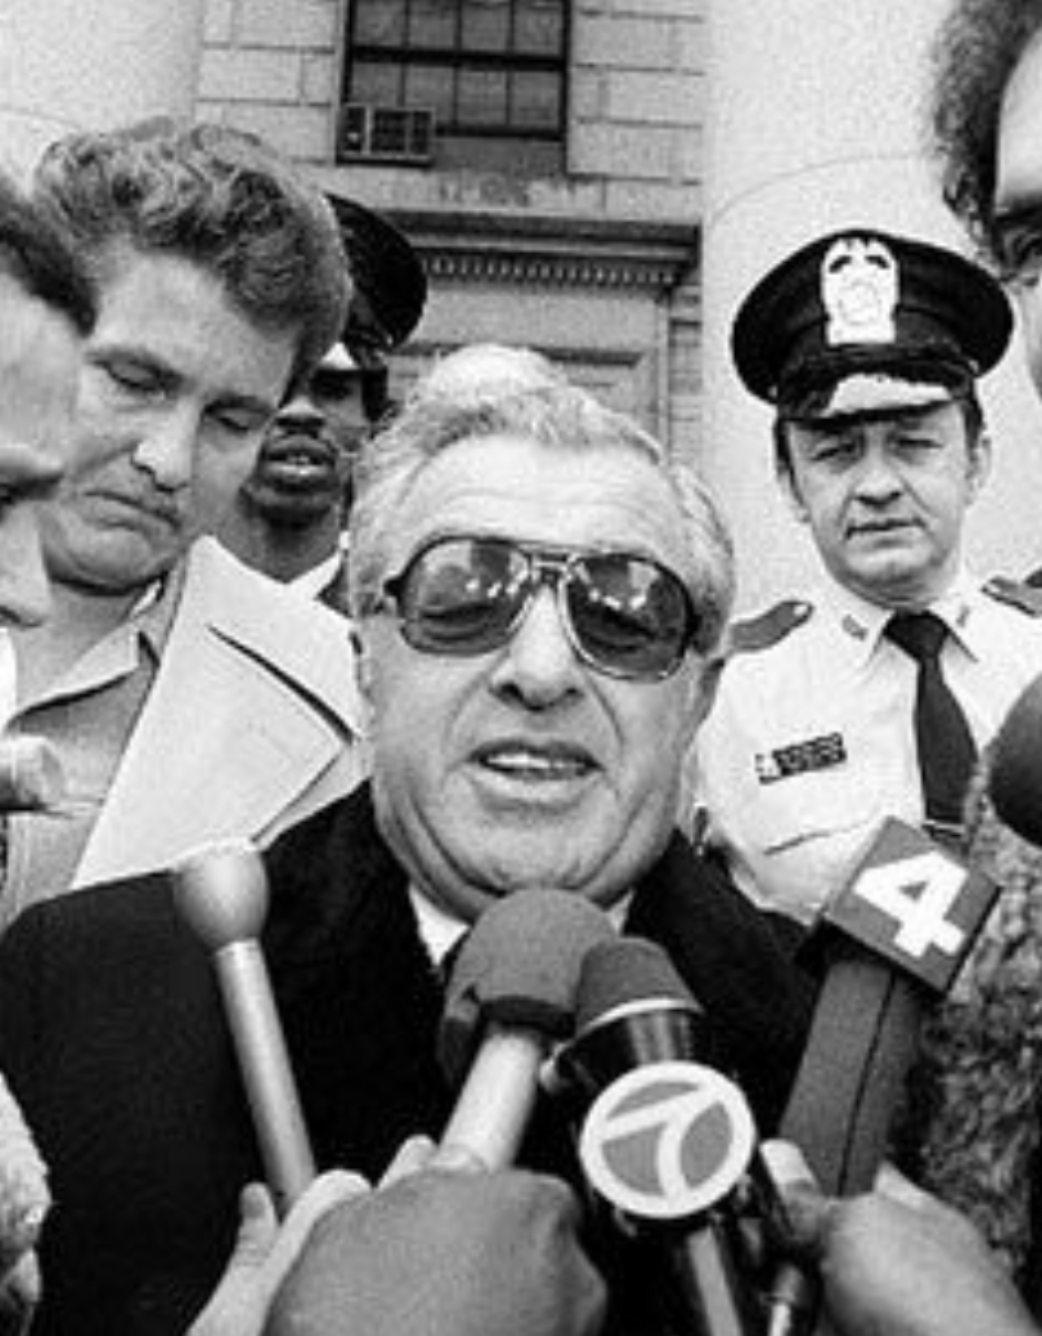 Anthony Provenzano:There was More to Tony Pro than Jimmy Hoffa